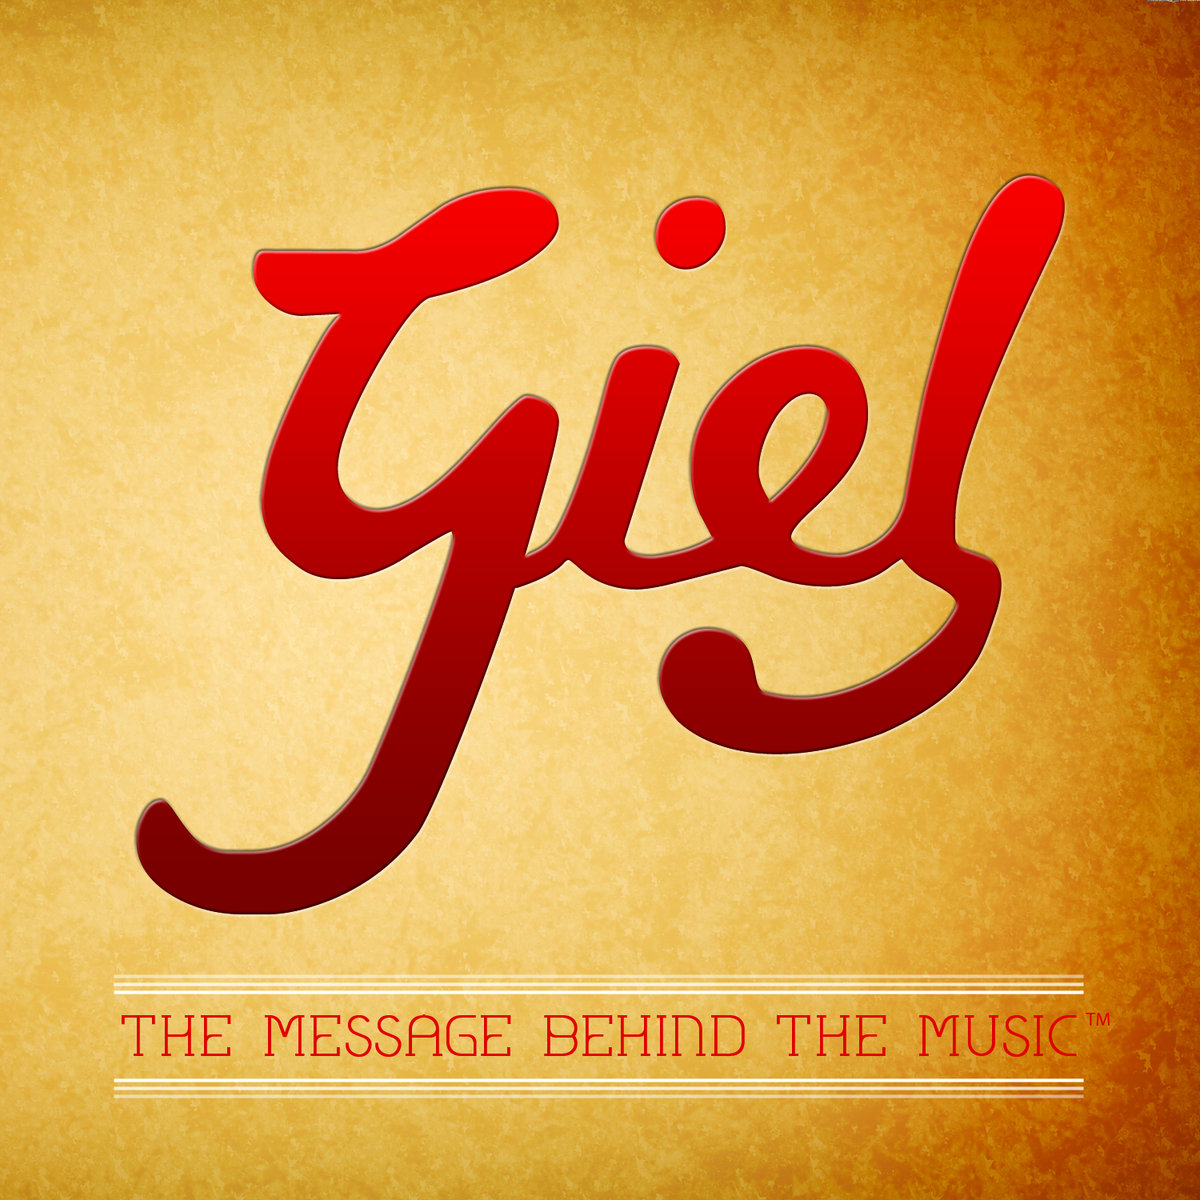 The Music Ep Giel The Message Behind The Music Ep Giel